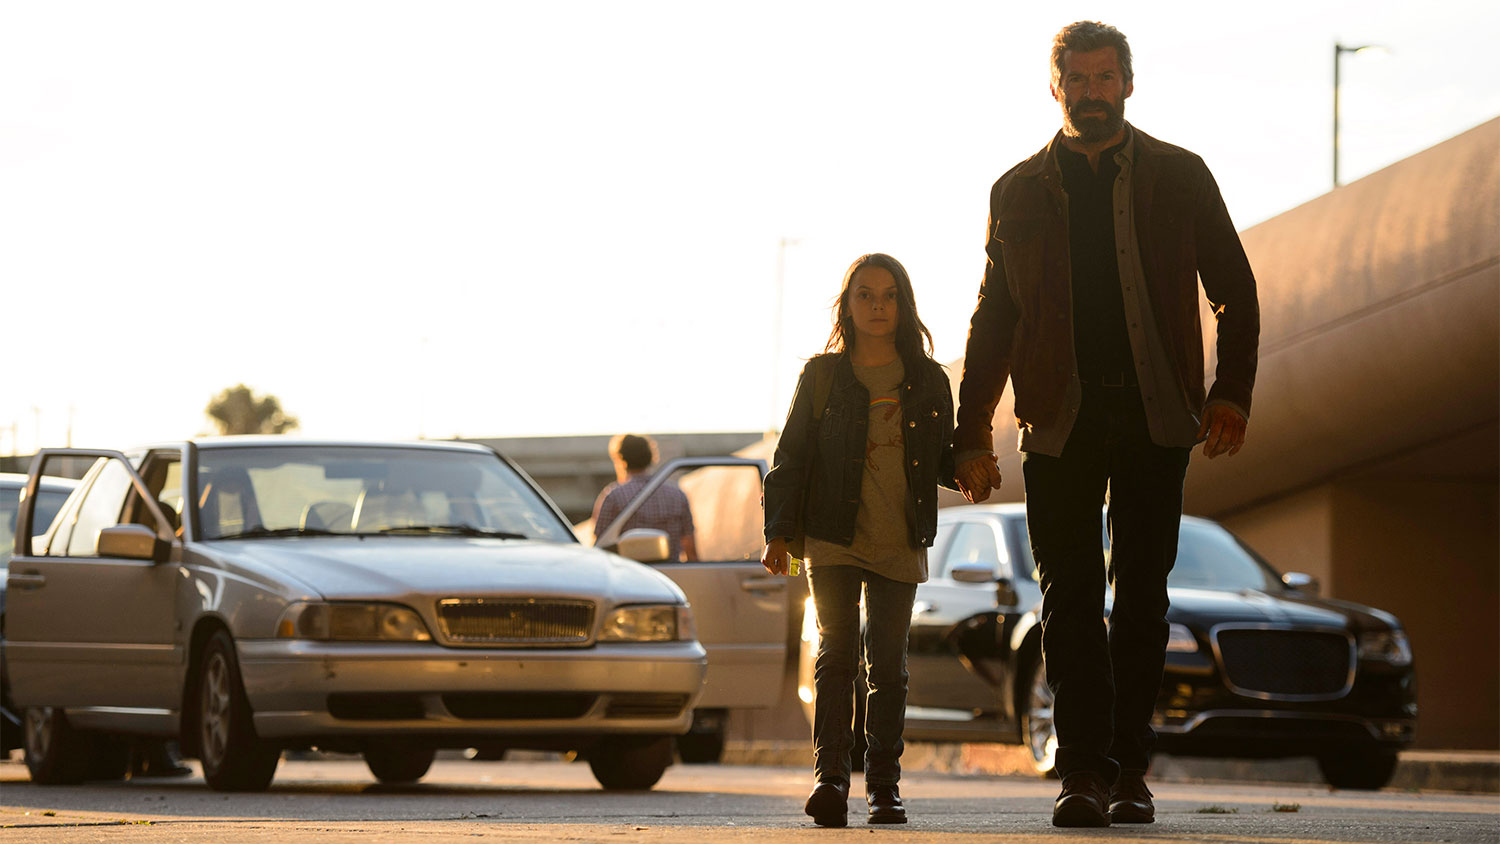 Box office hits and misses logan slices up a huge weekend while get out stays strong - Box office hits this weekend ...